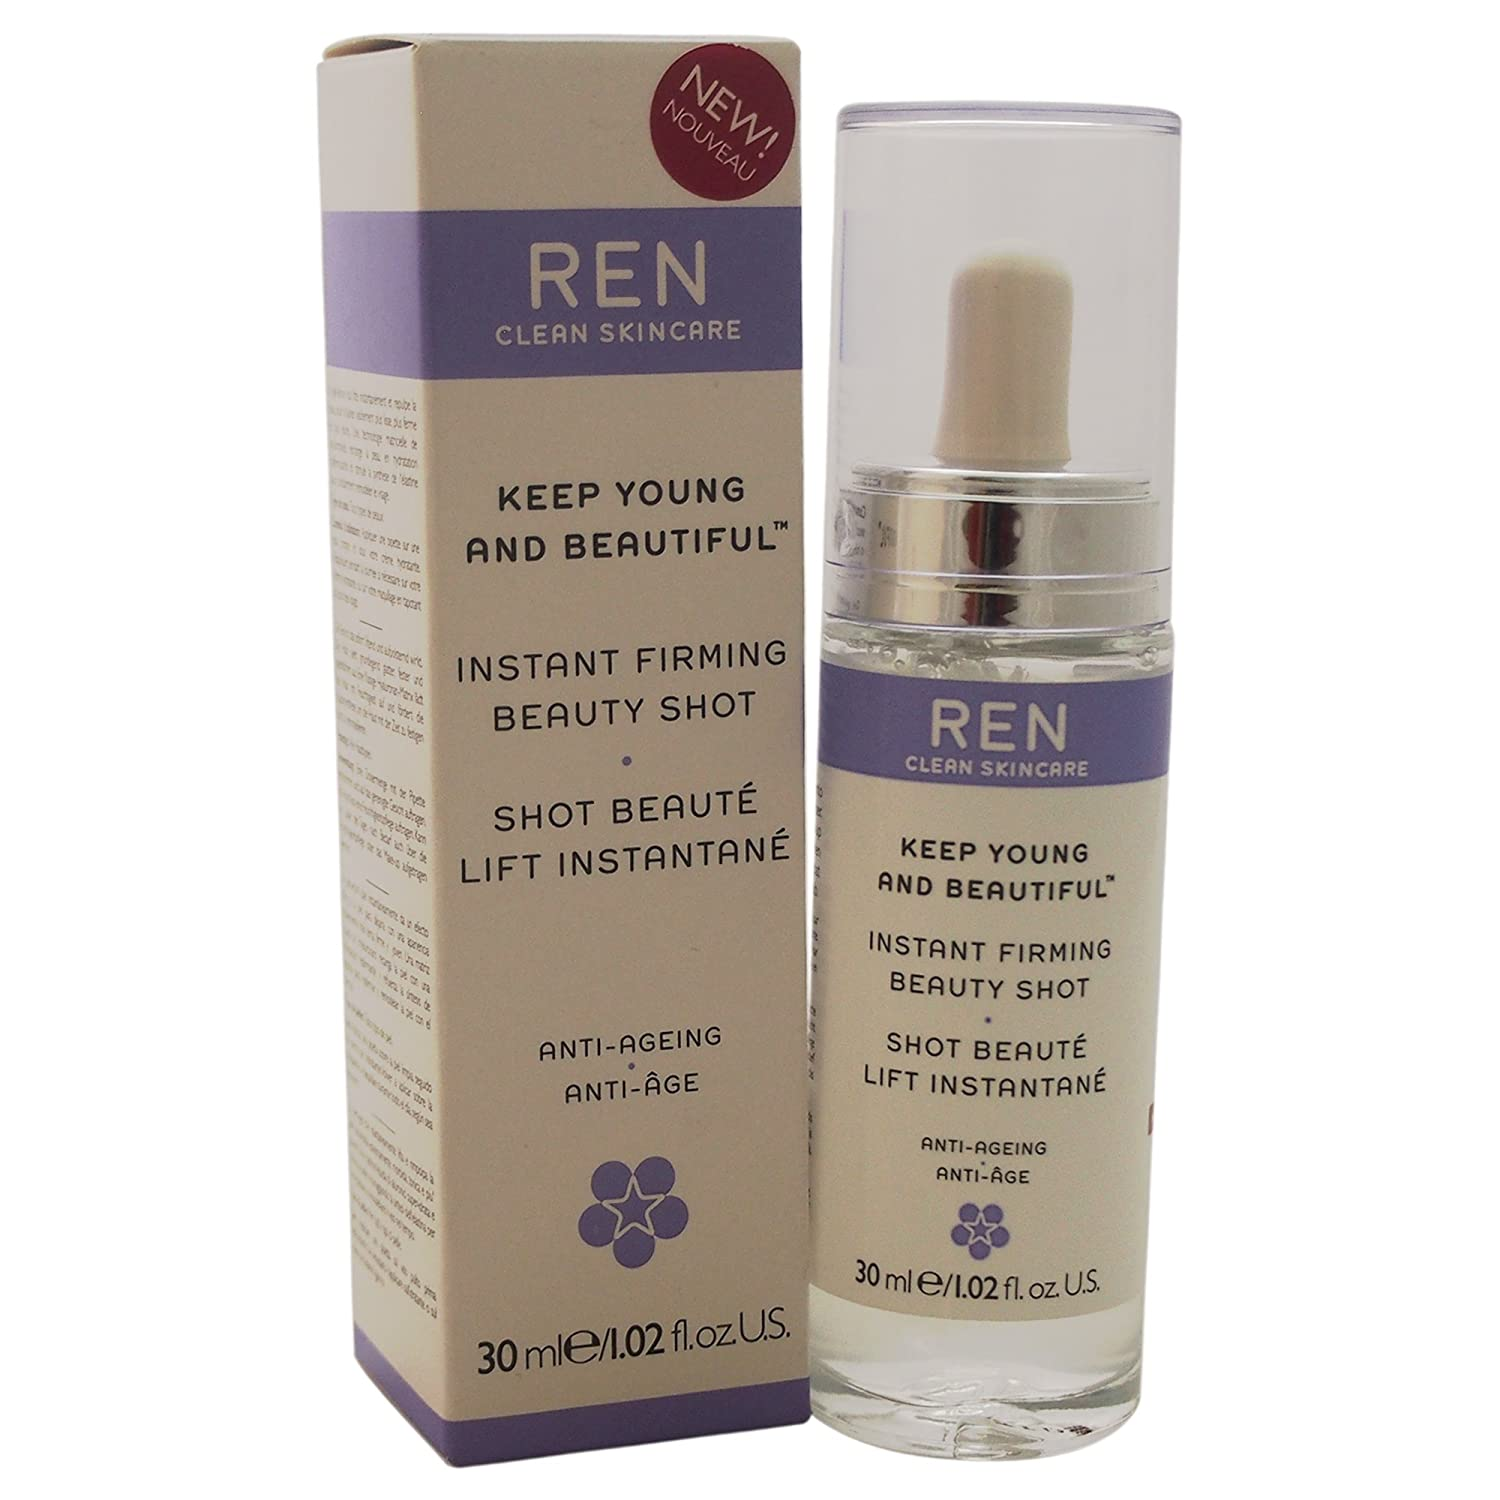 Ren Clean Skincare keep young and beautiful instant firming beauty shot, 30ml U-SC-3692 28003846